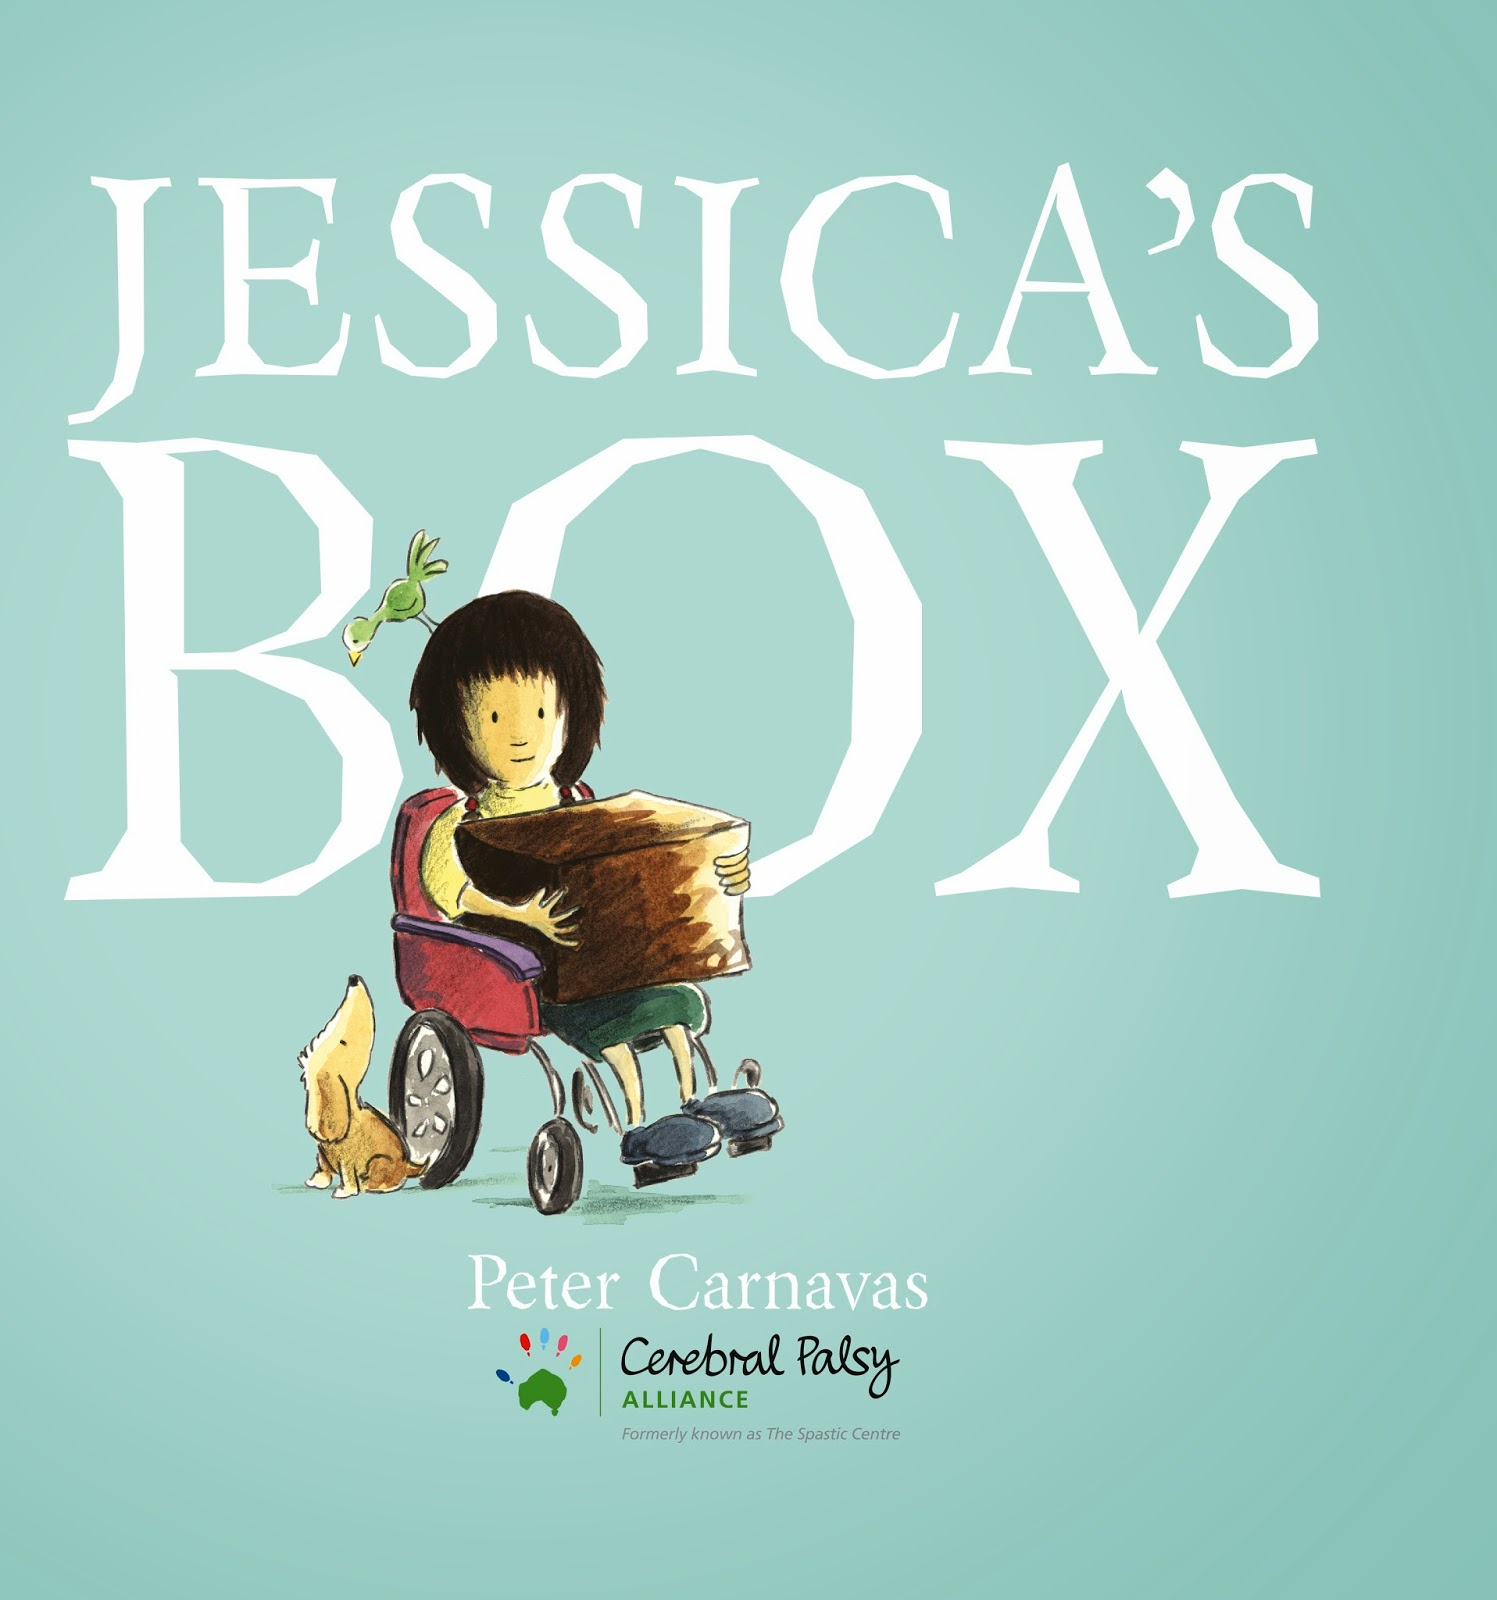 Kids' Book Review: Review: Jessica's Box - Cerebral Palsy Alliance